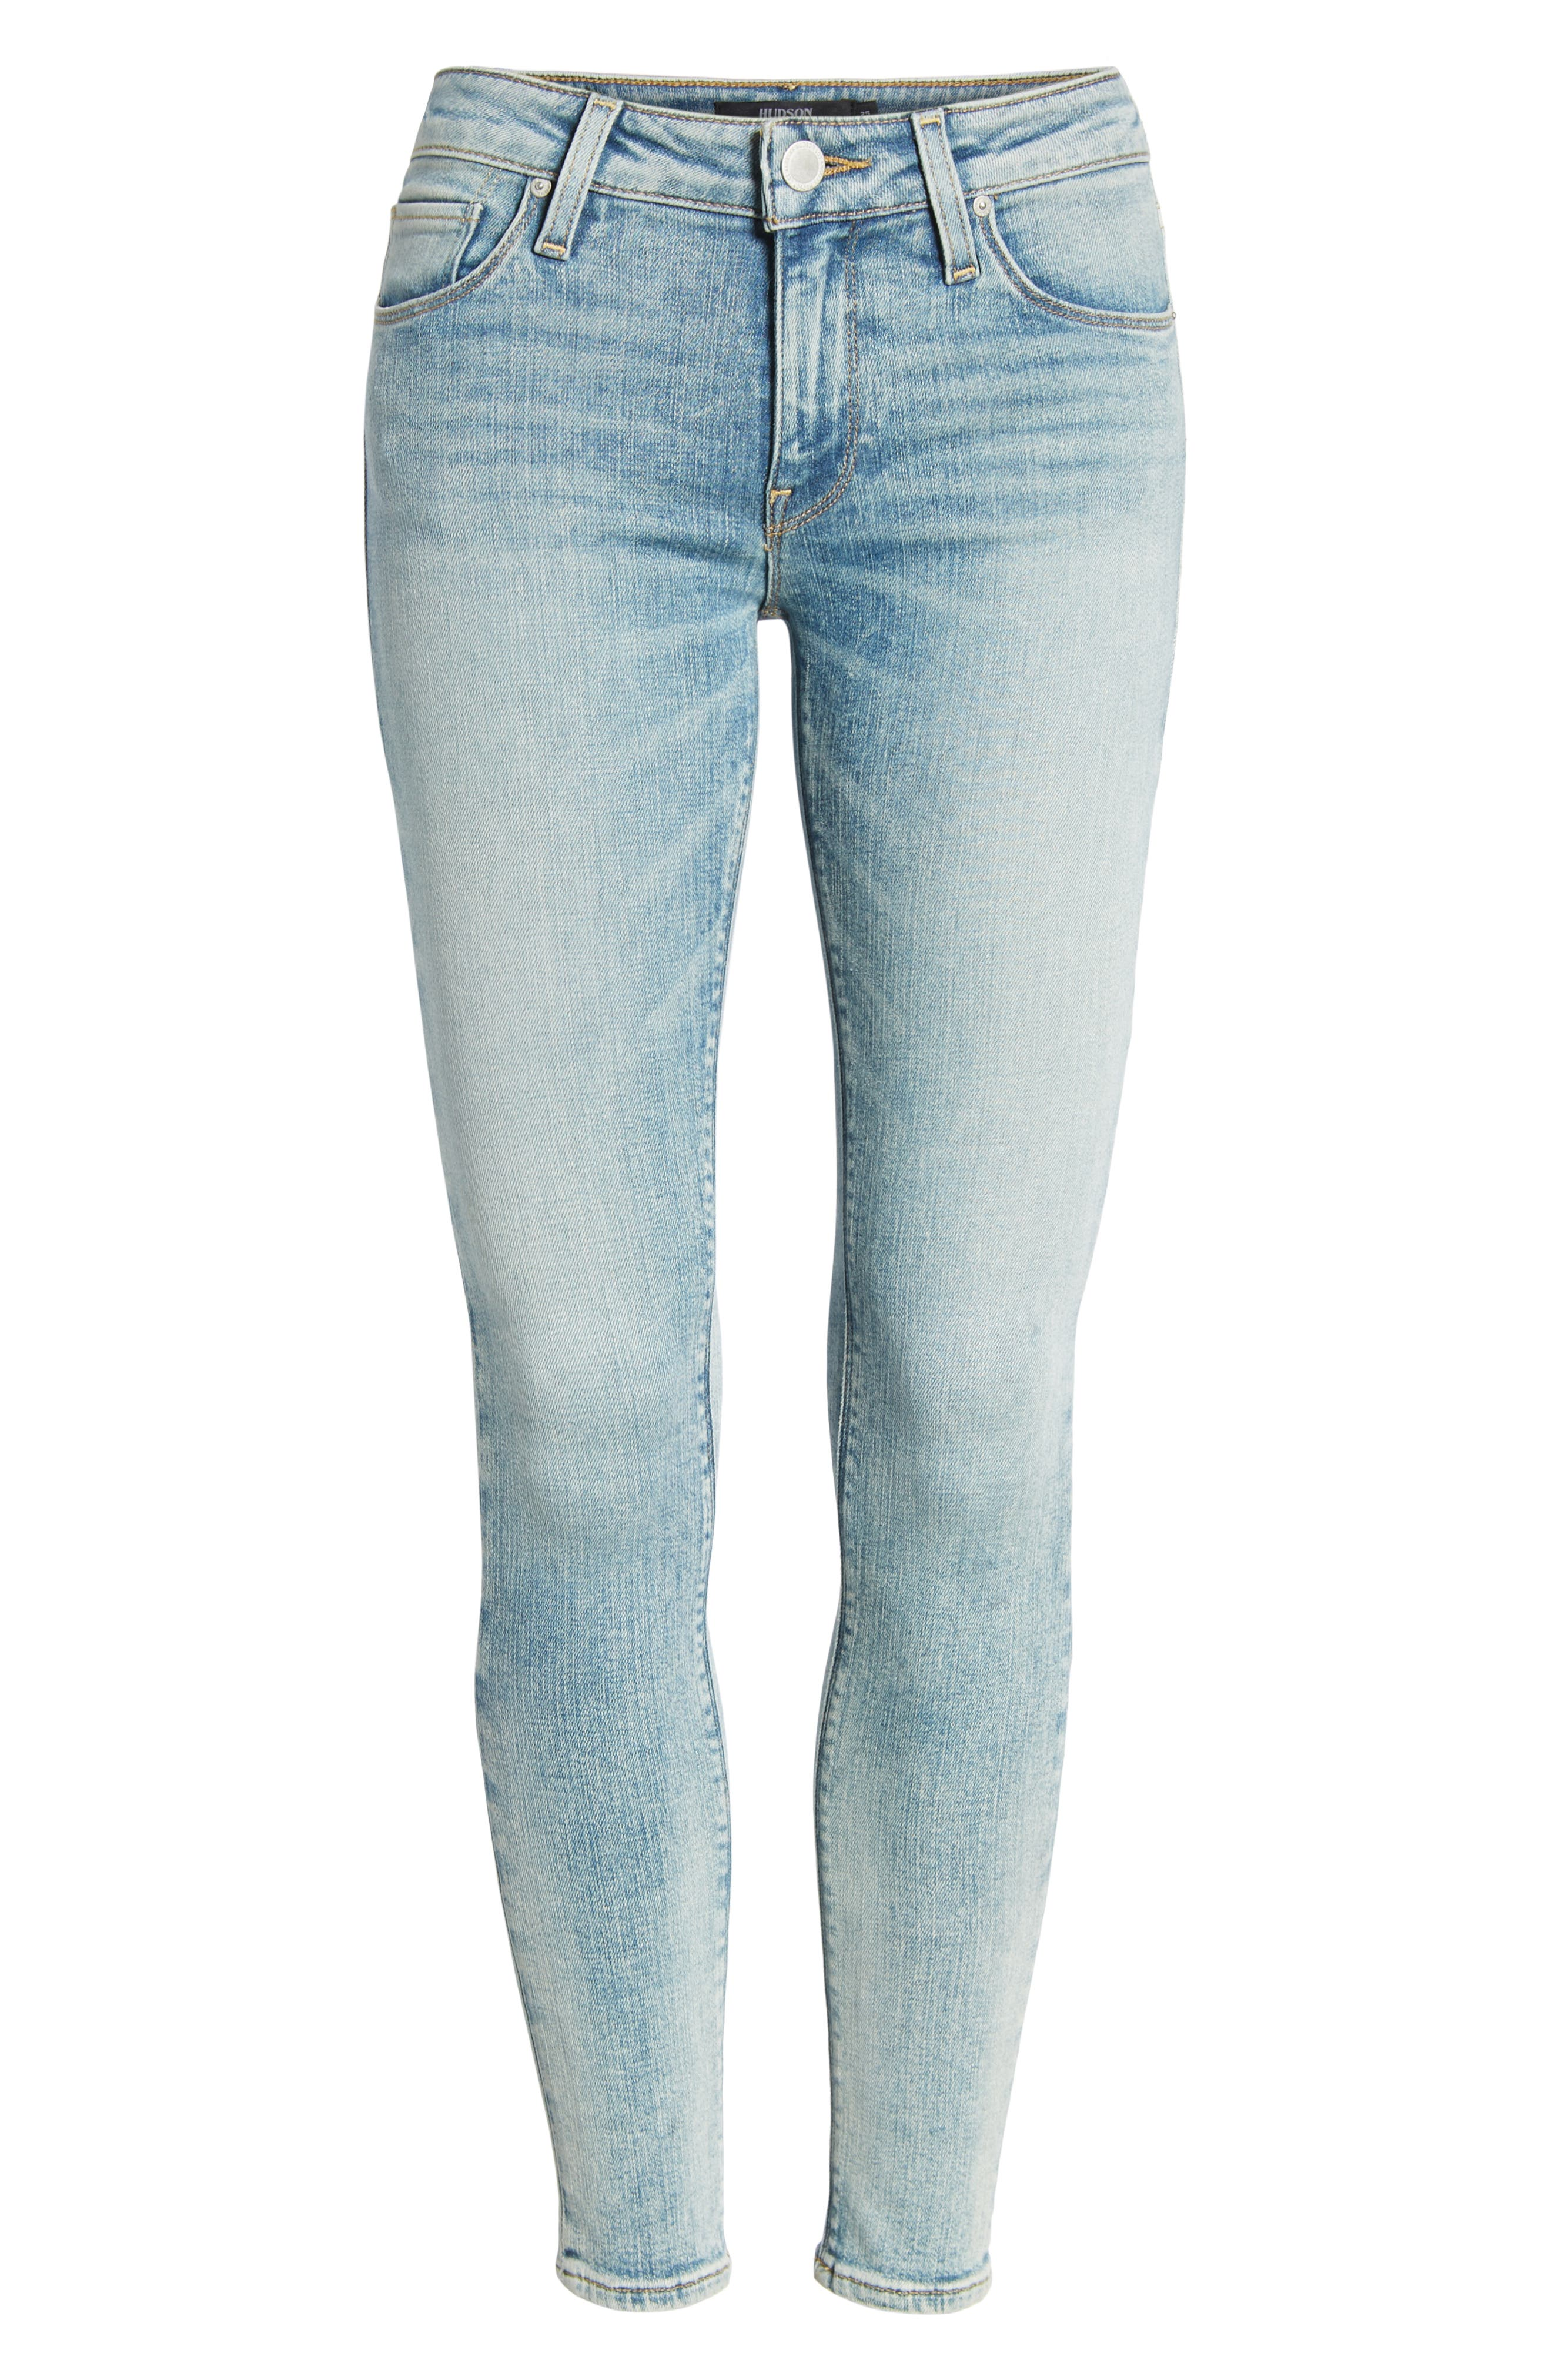 Krista Ankle Super Skinny Jeans,                             Alternate thumbnail 7, color,                             438